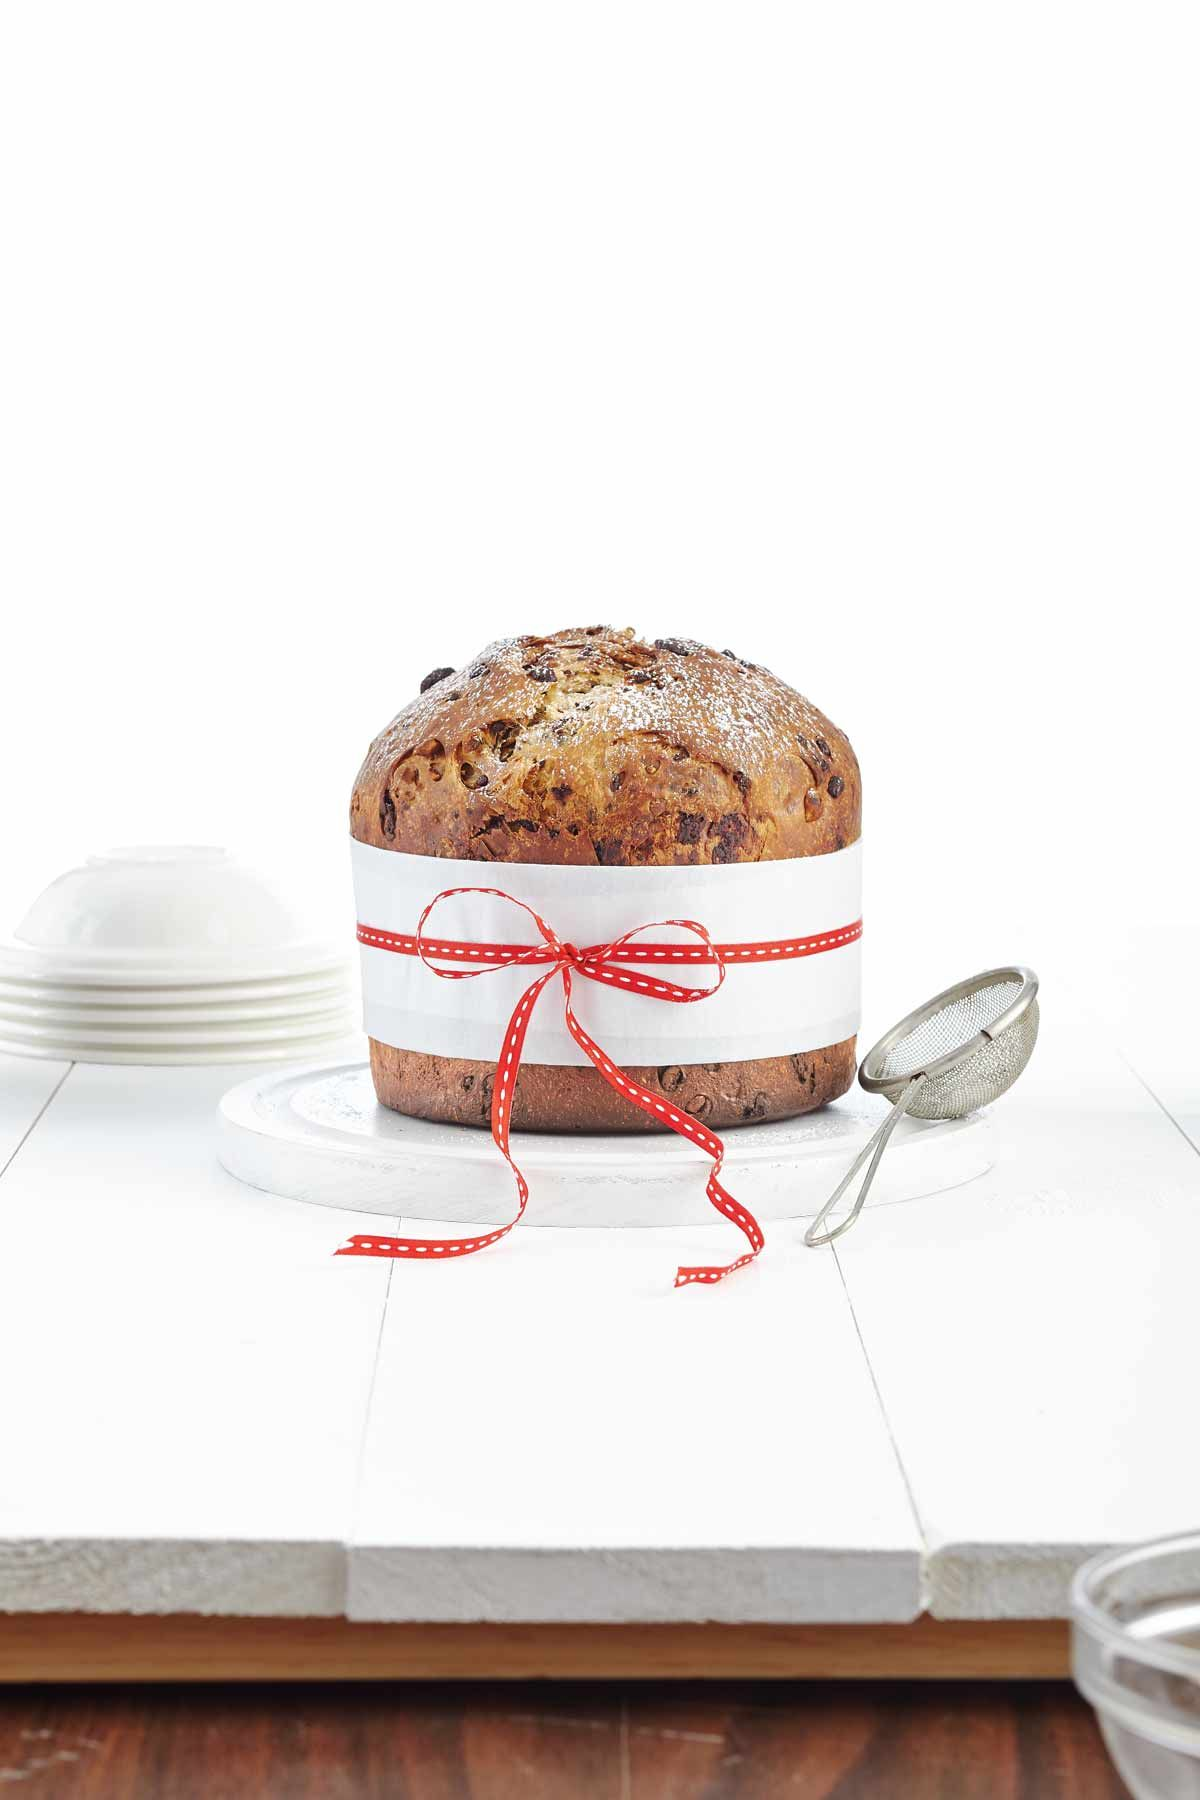 Panettone, a tall and cylindrical sweet bread made from a buttery, egg-rich dough, is an Italian Christmas classic. While it's traditionally made with dried fruit, we've added indulgent chocolate and roasted hazelnuts for the most decadent dessert possibl